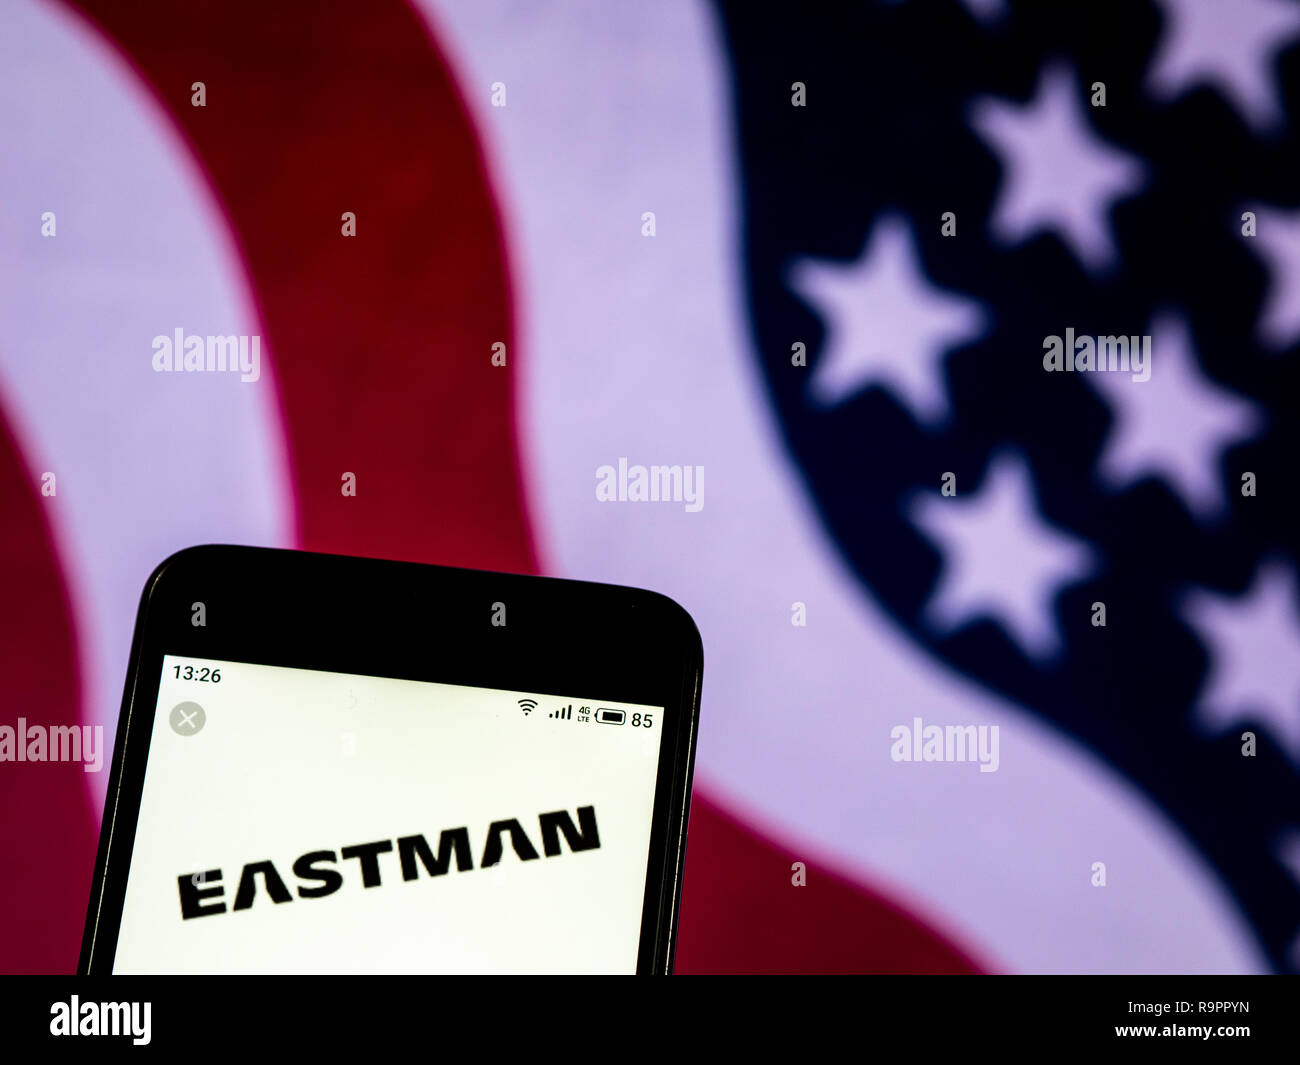 Eastman Chemical Company logo seen displayed on smart phone Stock